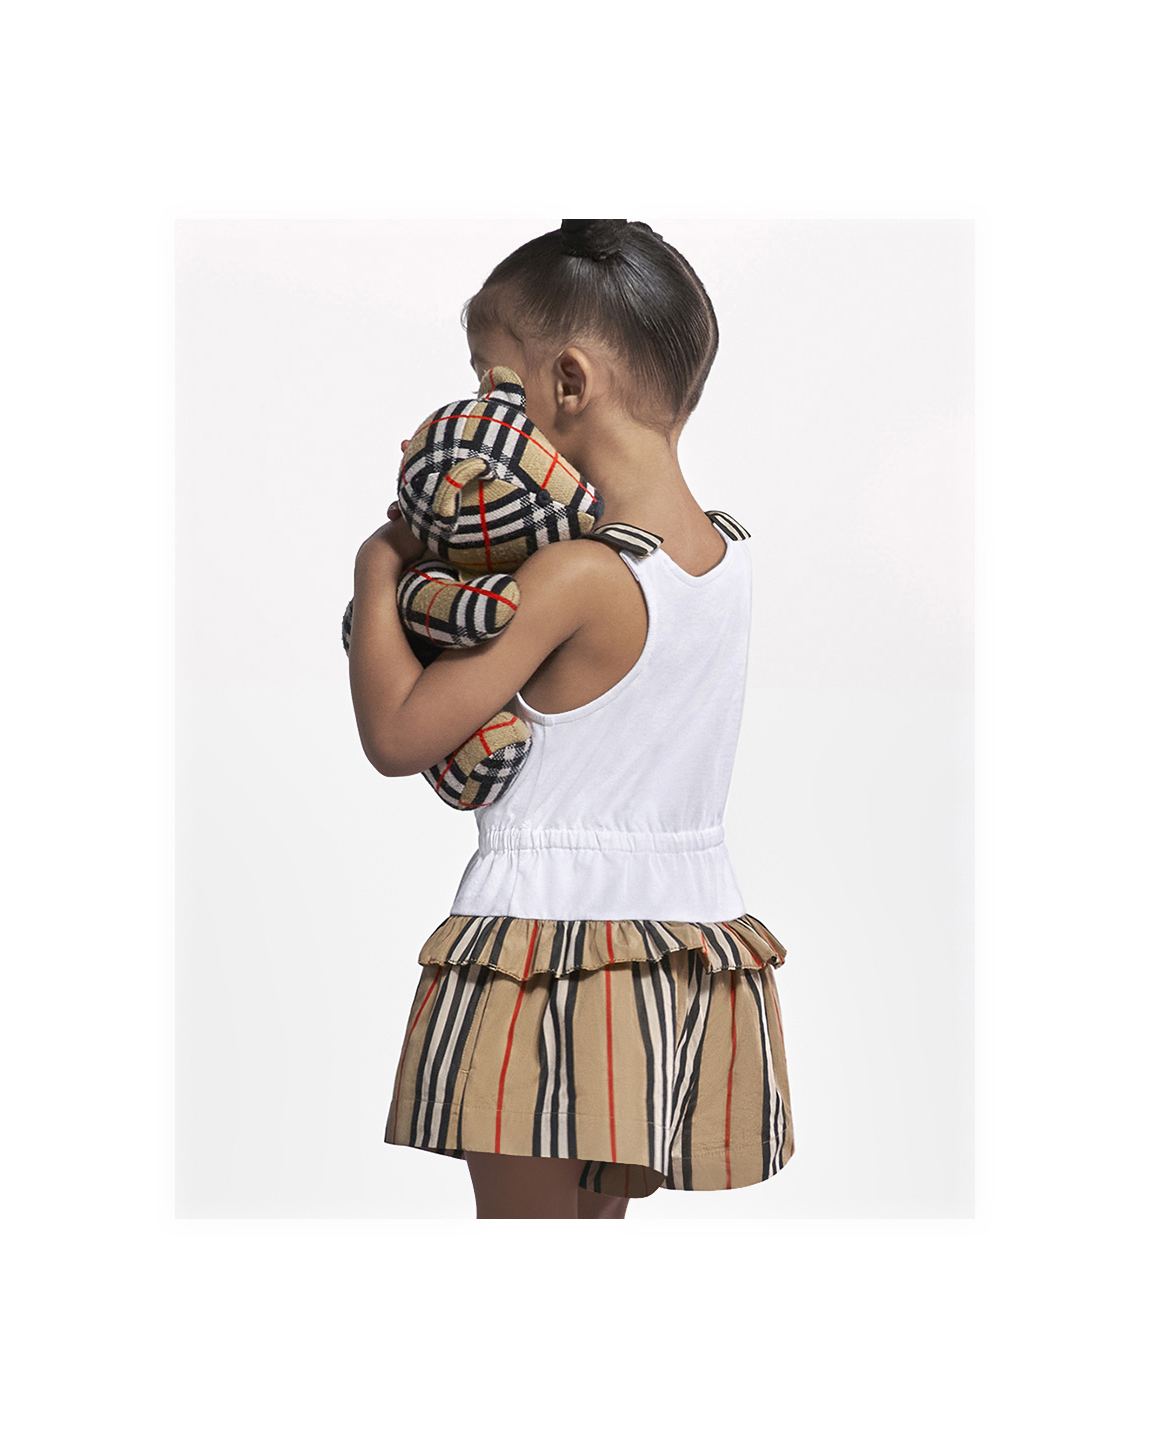 M 2021 ss21 childrenswear campaign infant girl look 1 cropped 02